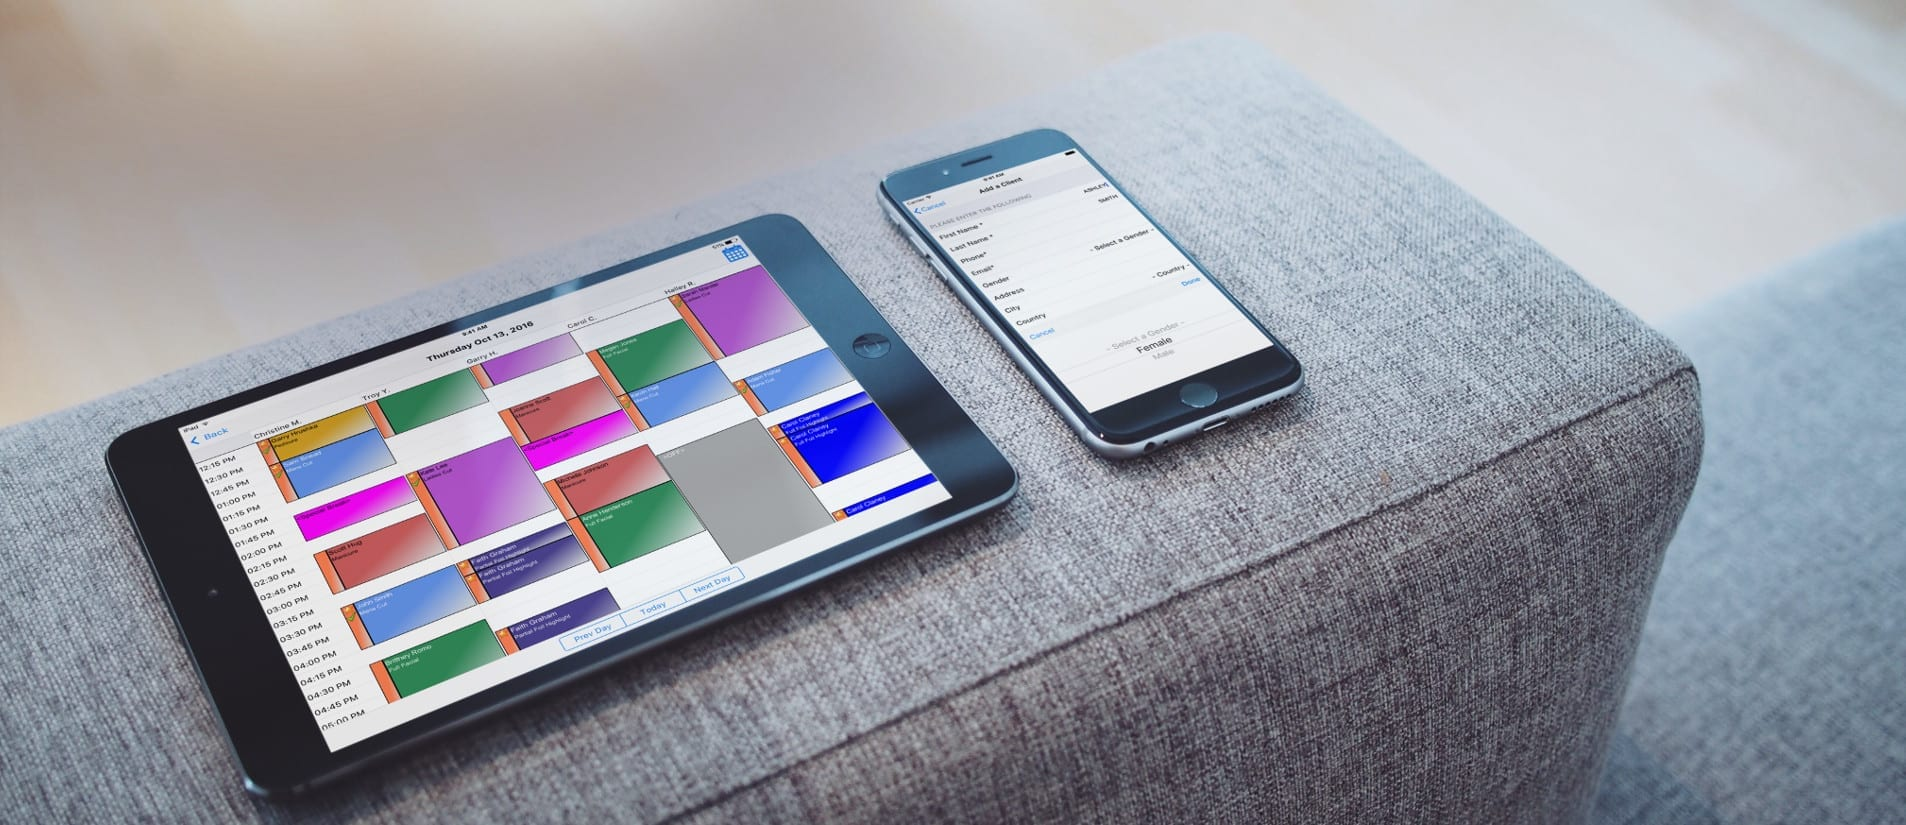 Insight Phone and Tablet Apps for Salons